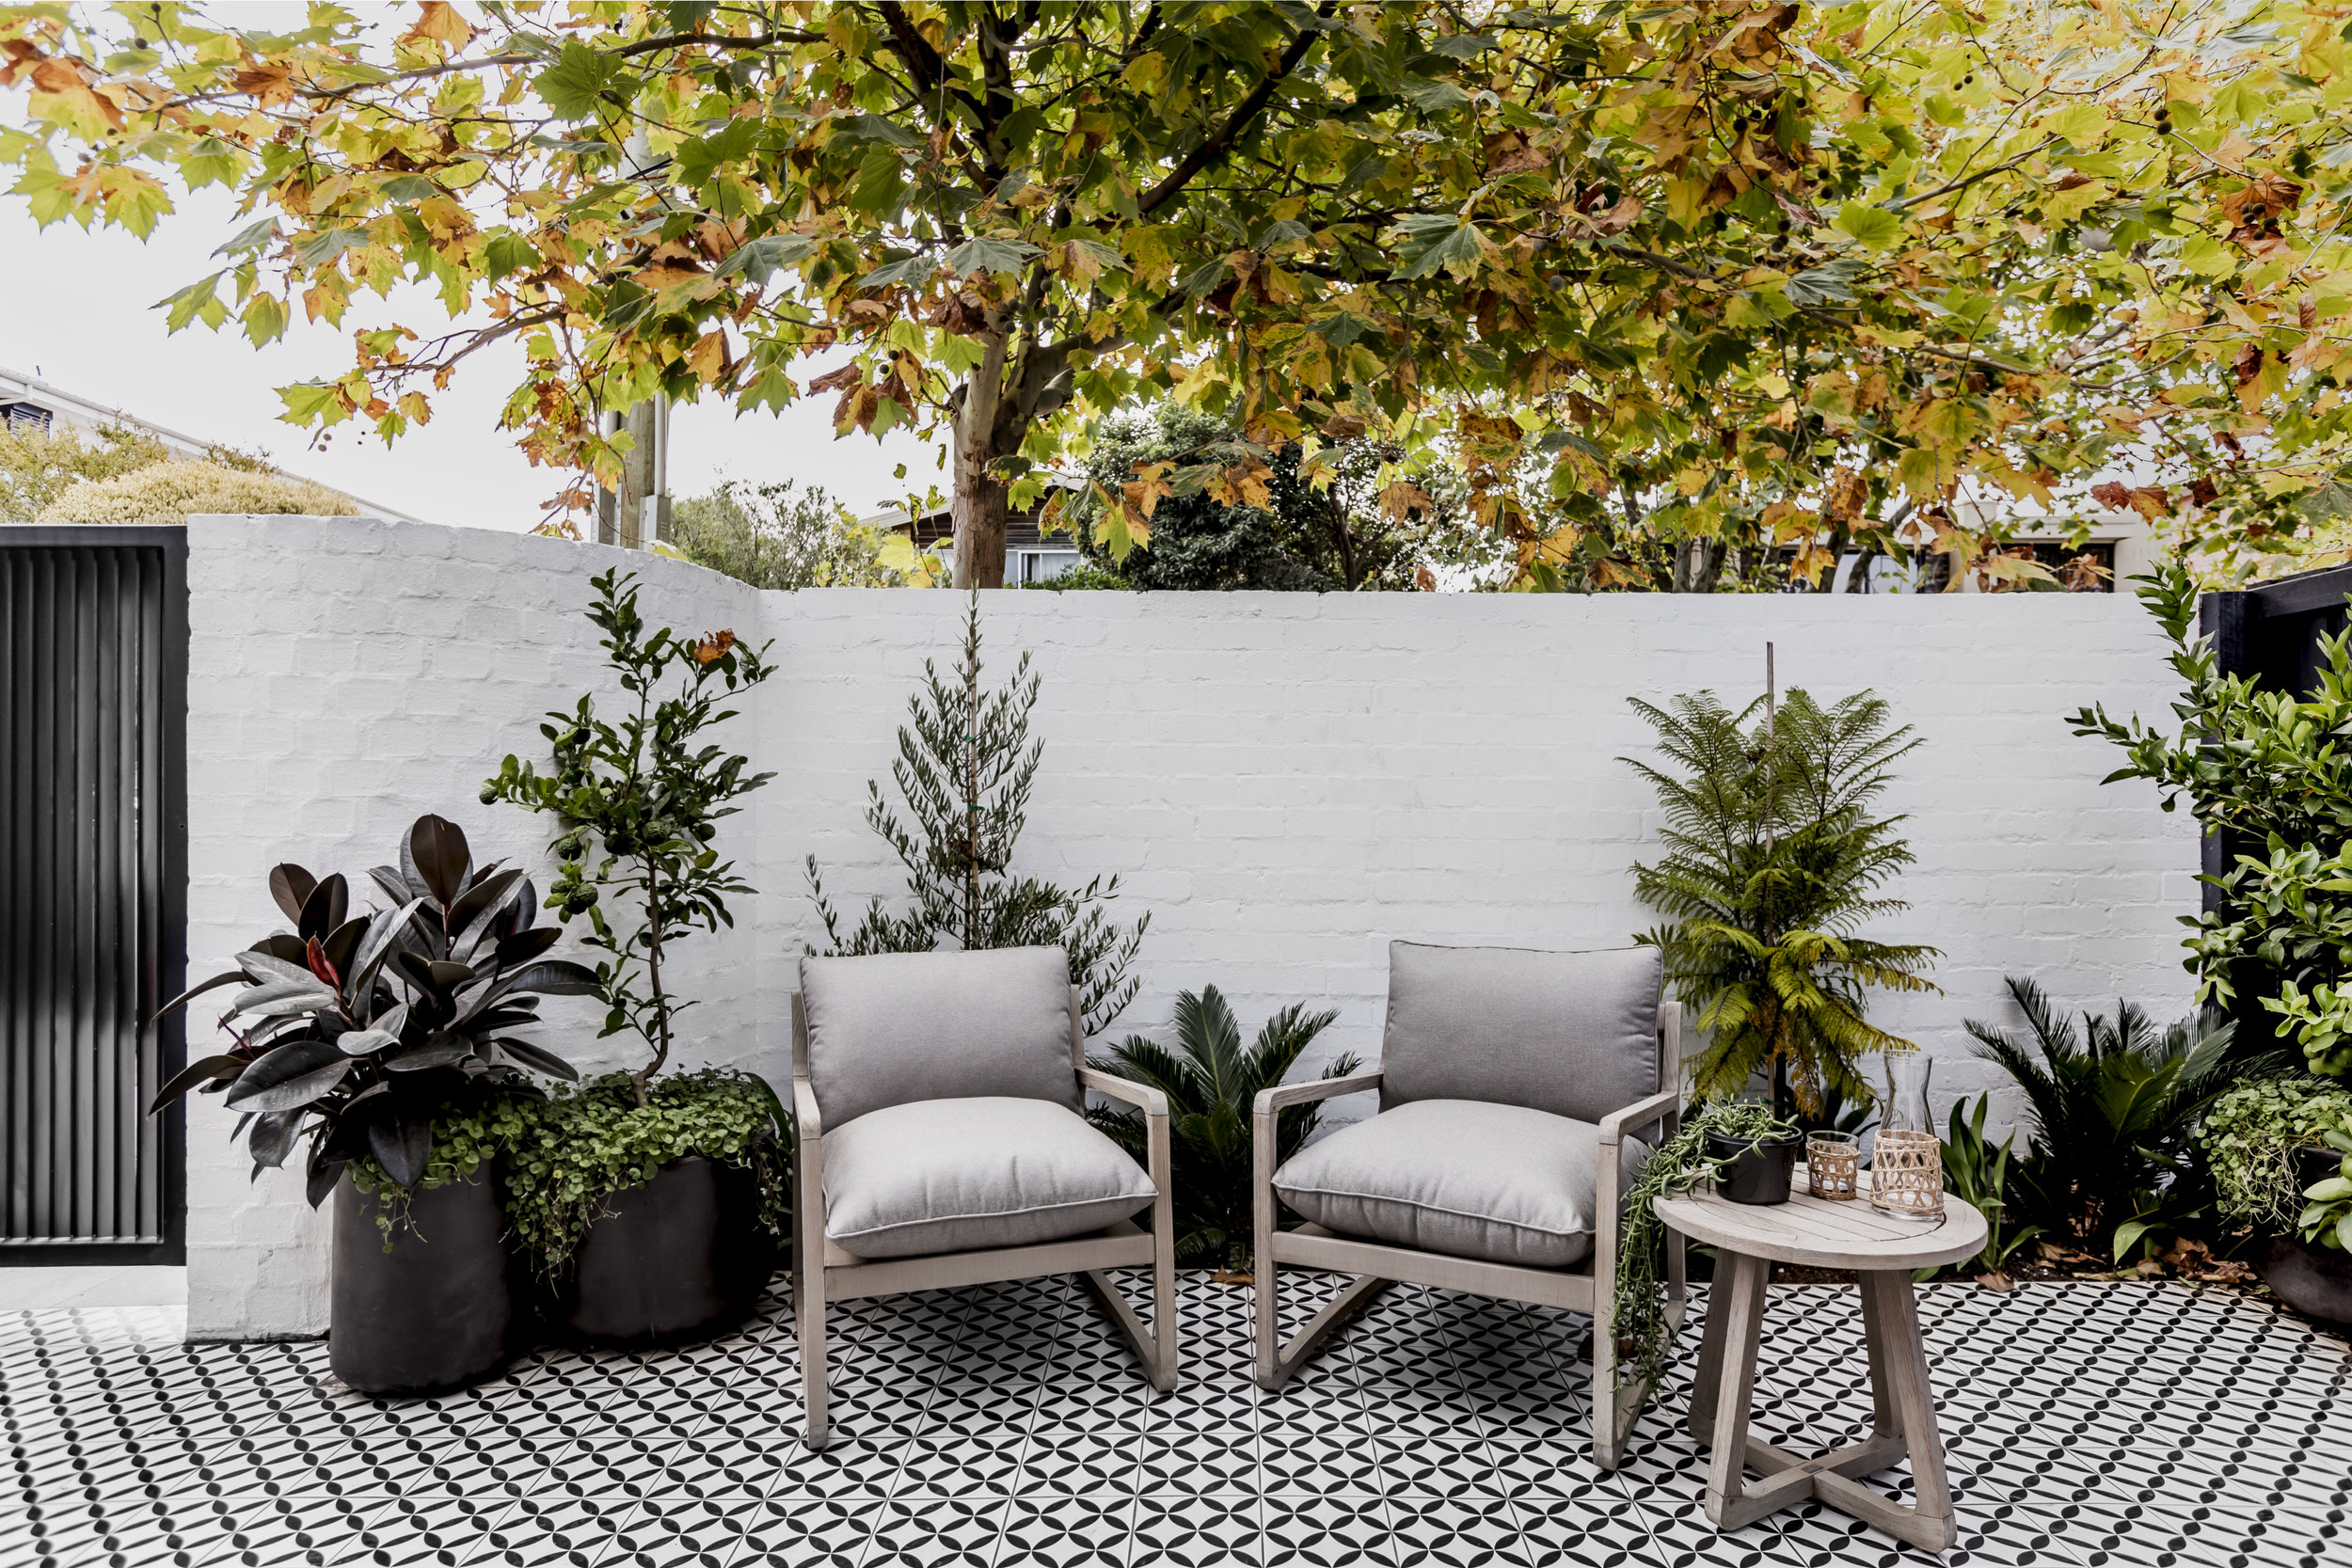 The courtyard, with its beautiful and graphic floor tiles. Photo -  Maegan Brown .